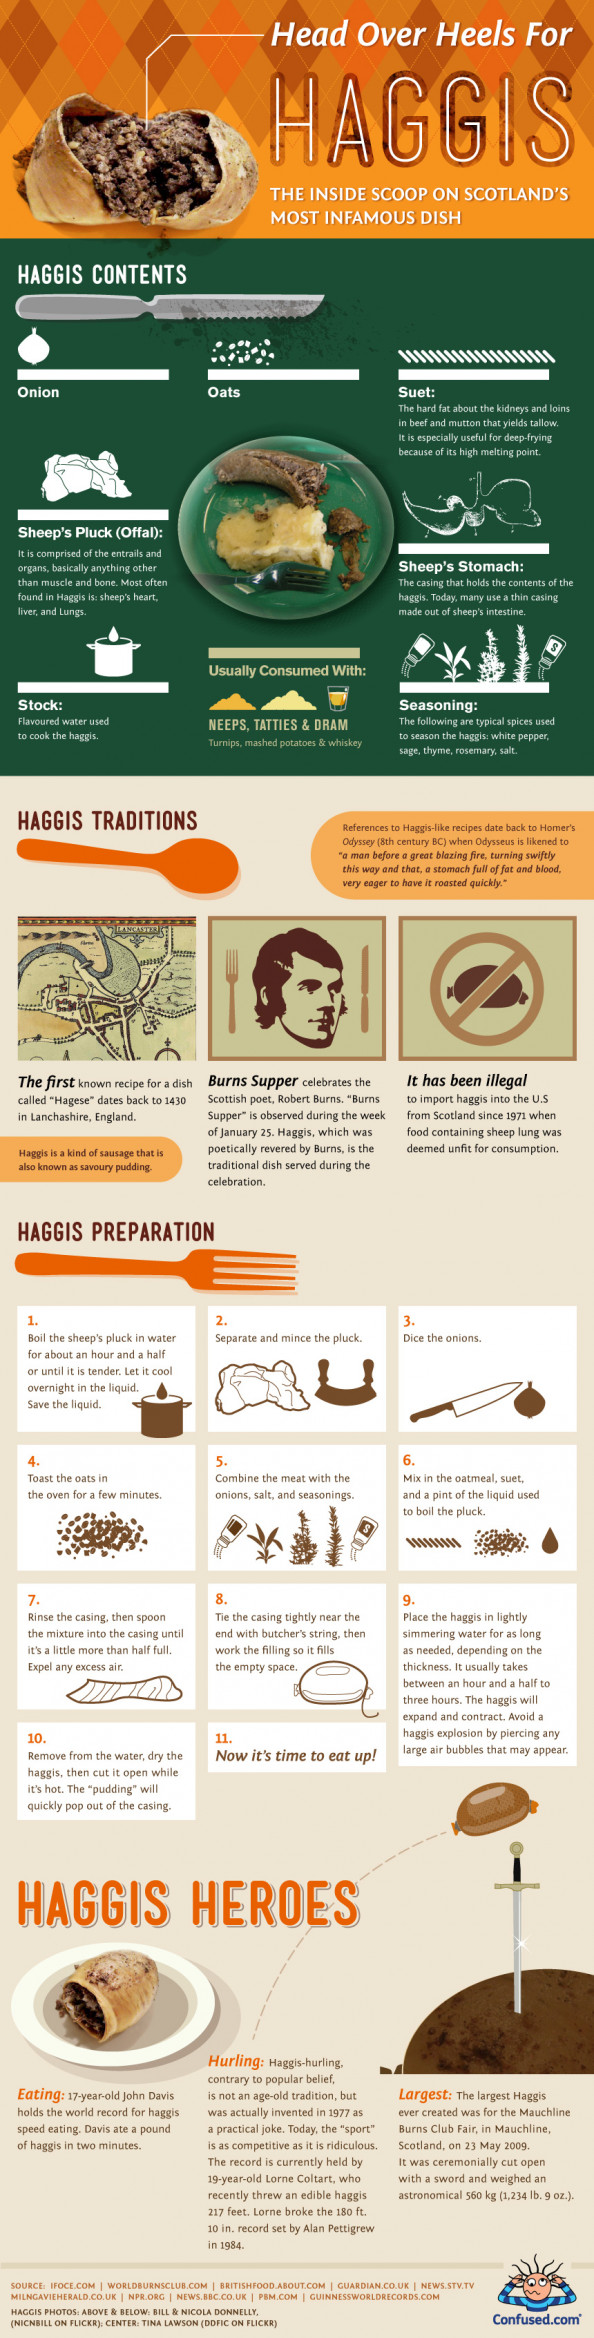 Head Over Heels For Haggis Infographic